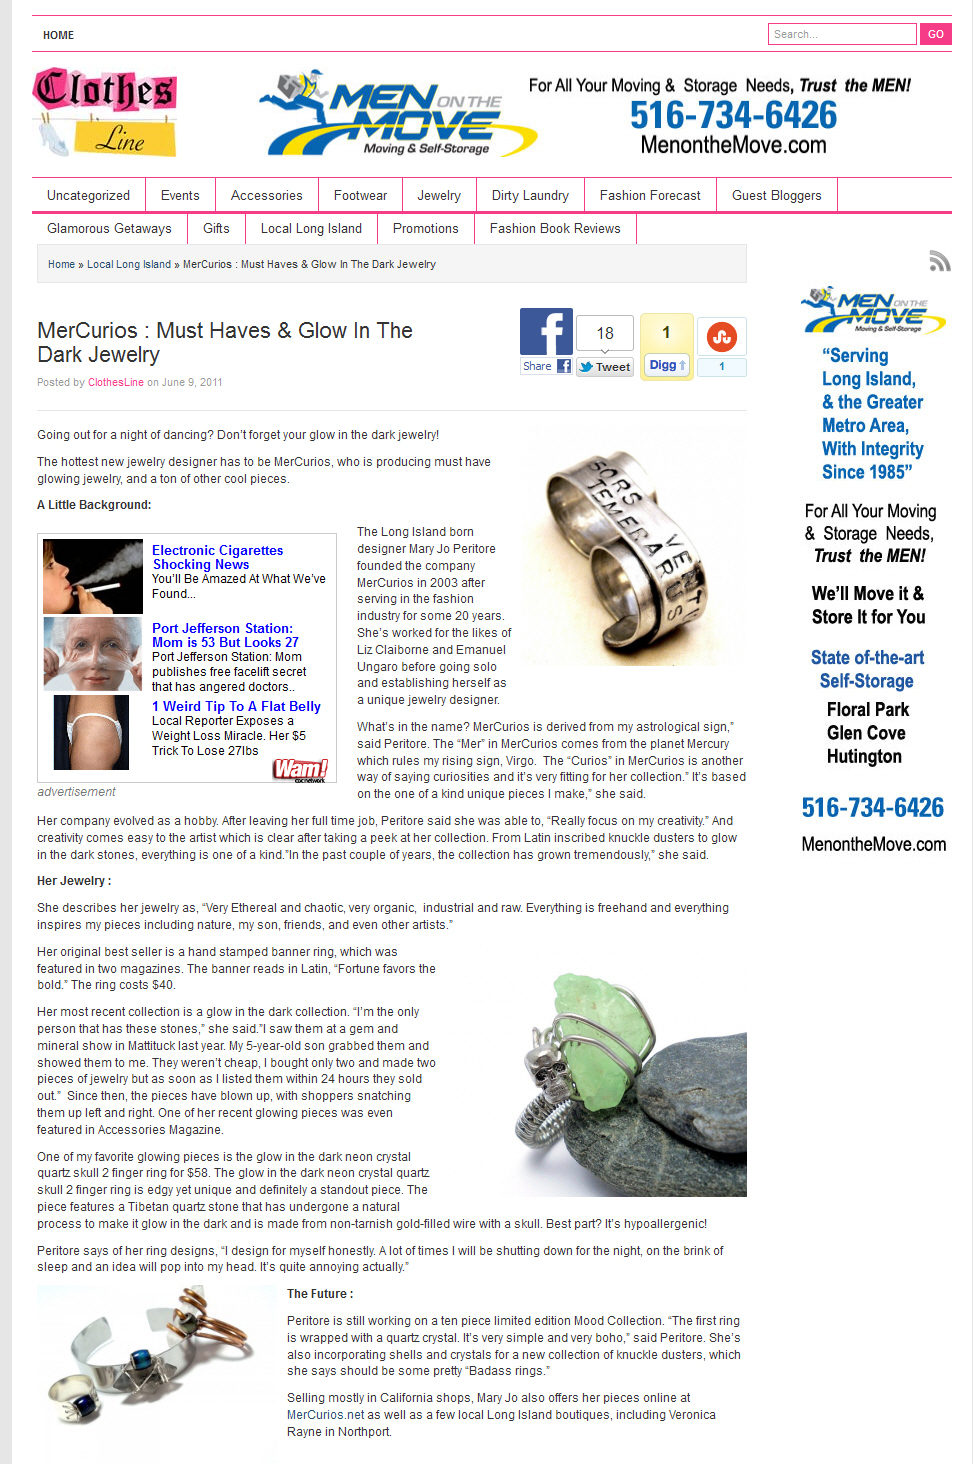 Long Island Press - Clothes Line: MerCurios: Must Haves and Glow in the Dark Jewelry 6.09.2011 // June 2011